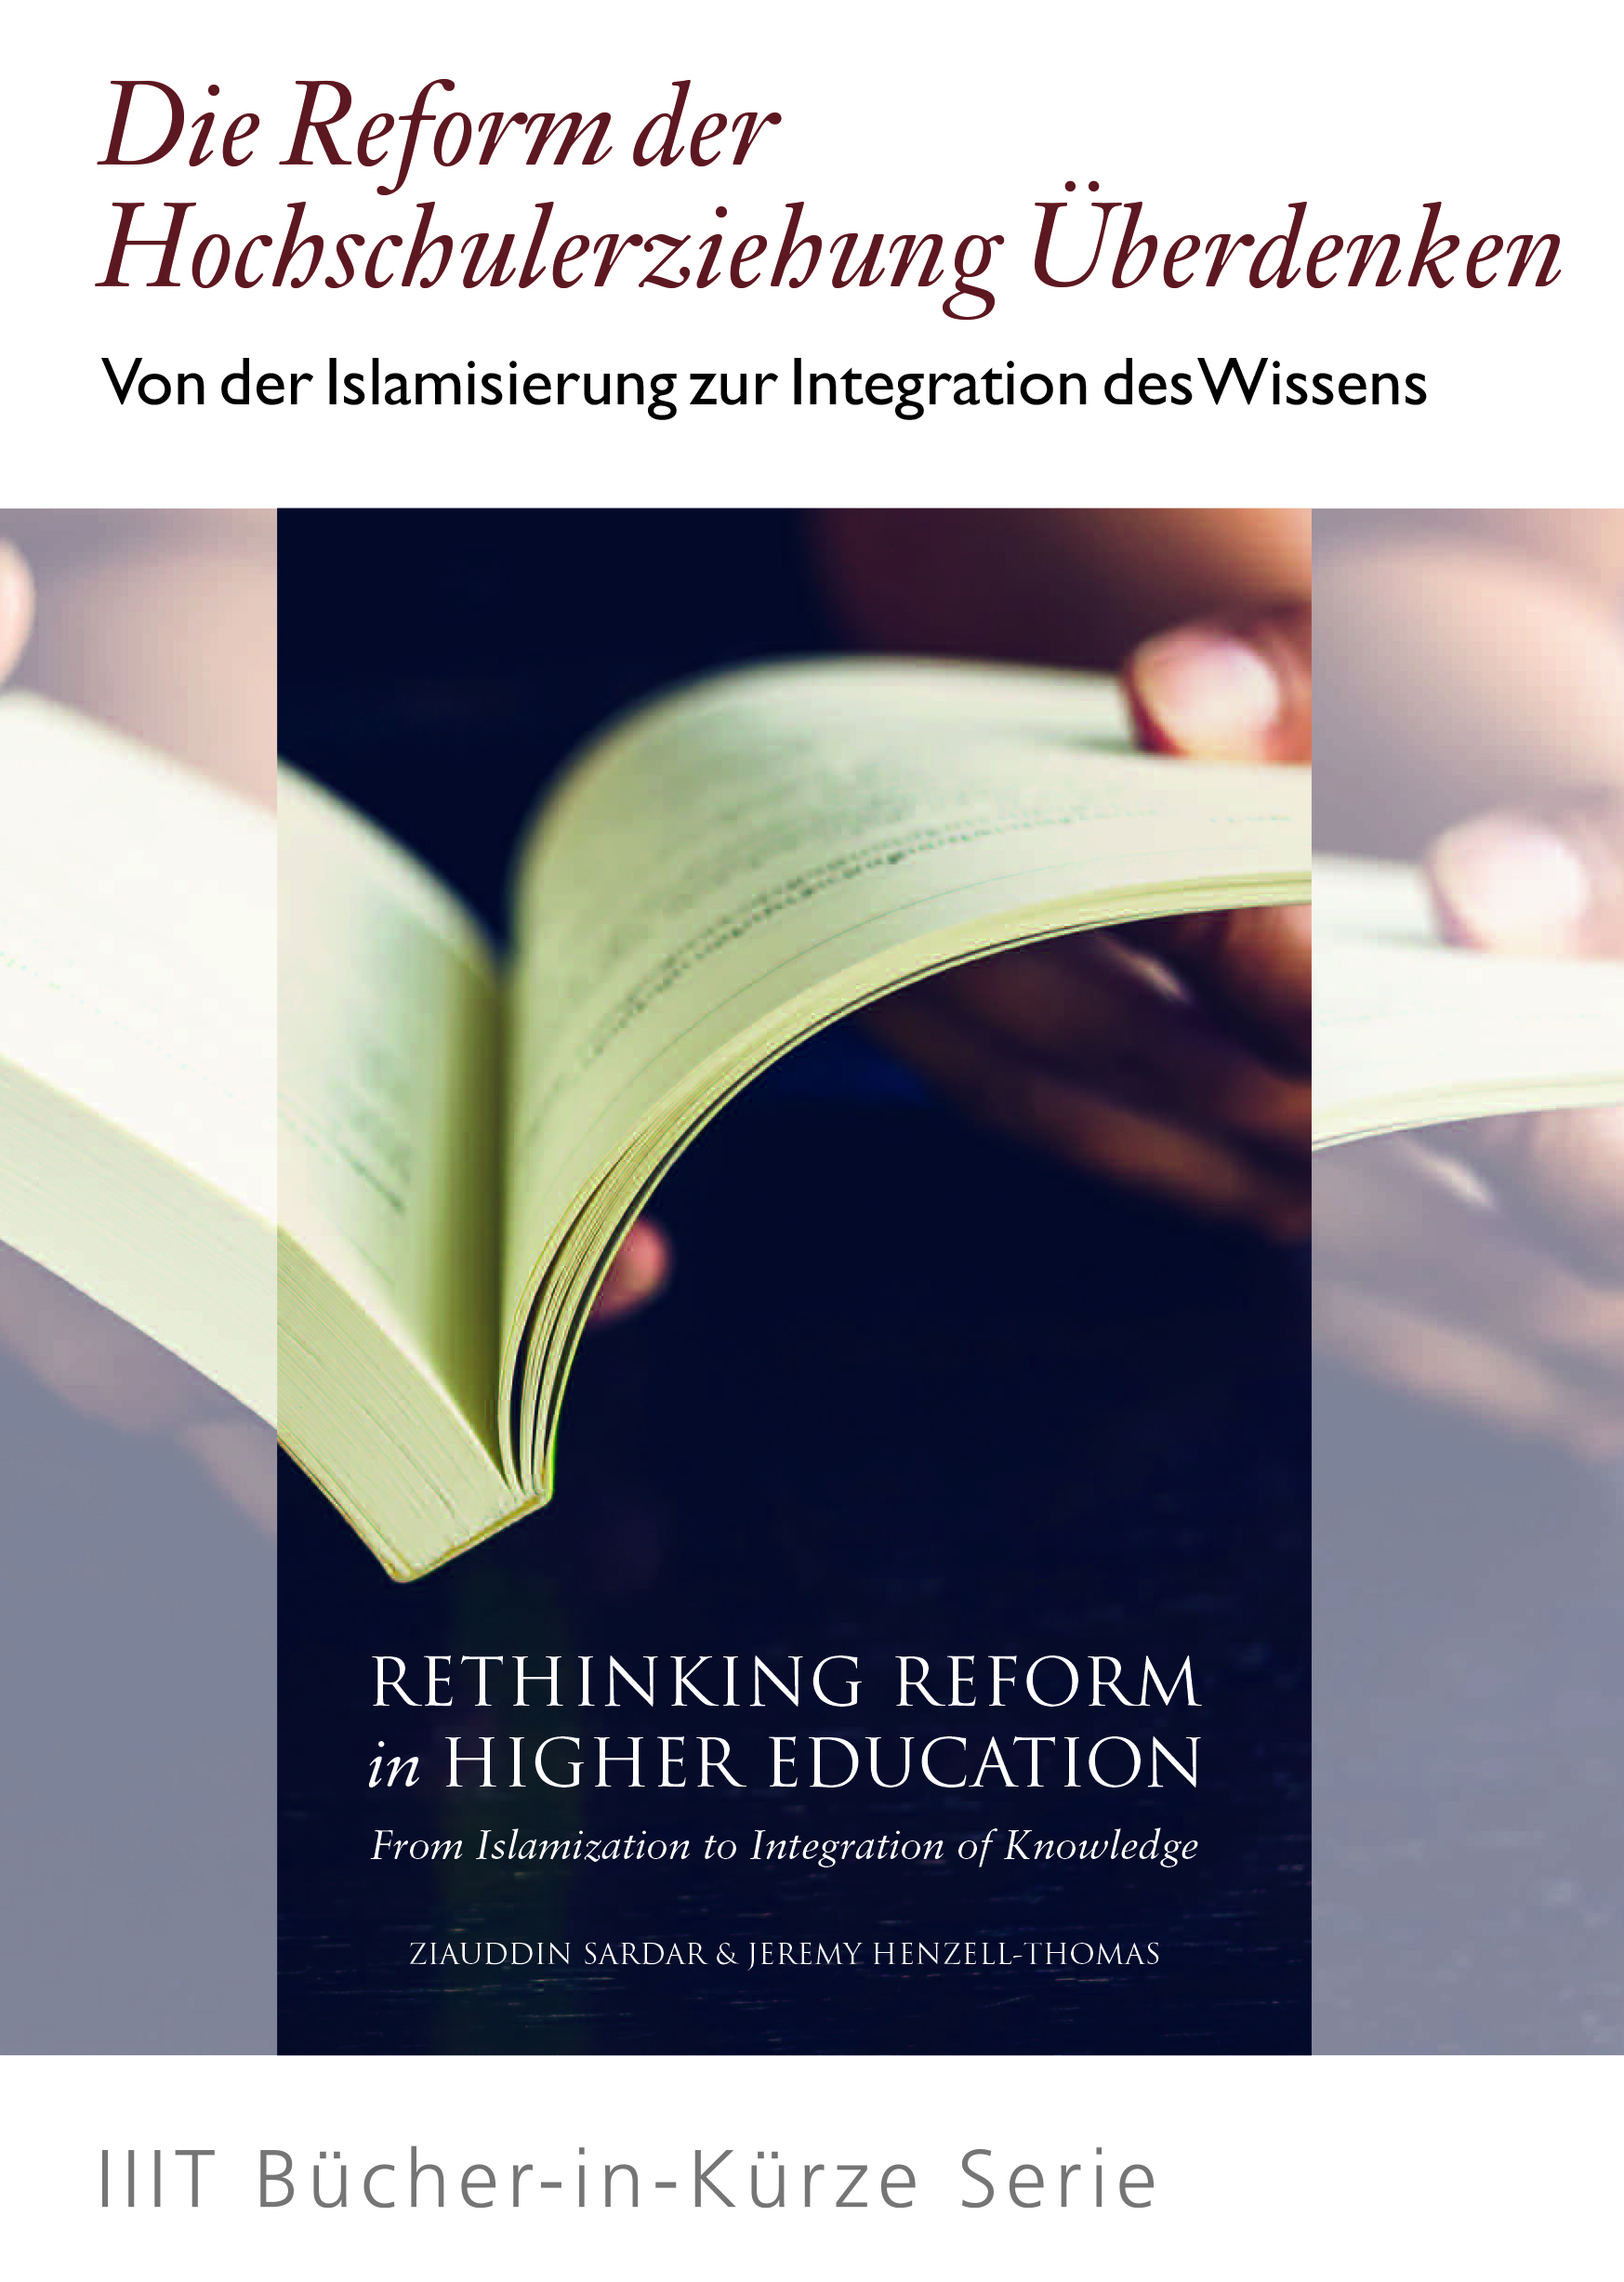 Rethinking Reform in Higher Education: From Islamization to Integration of Knowledge